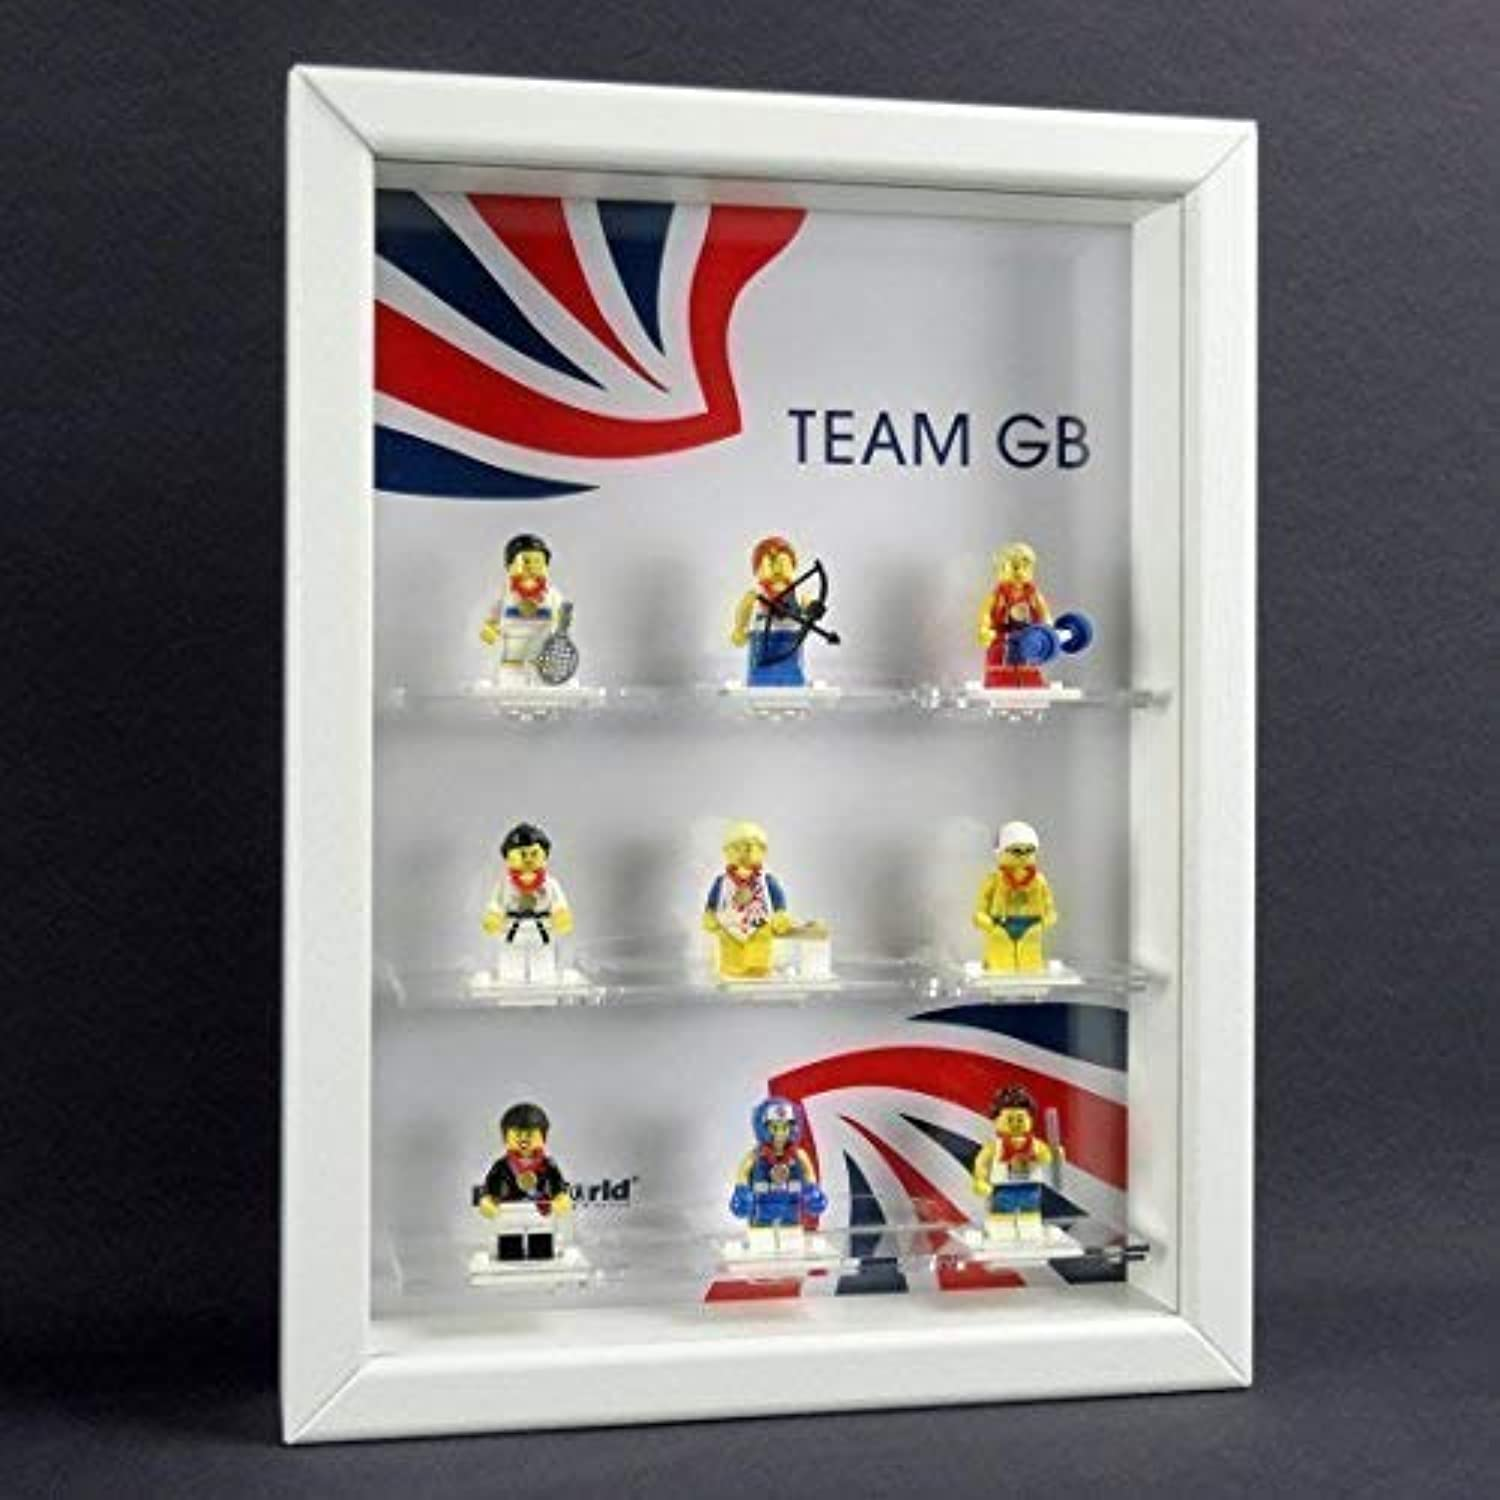 Figucase Collect showcase for LEGO Series TEAM GB UK Olympia 2012